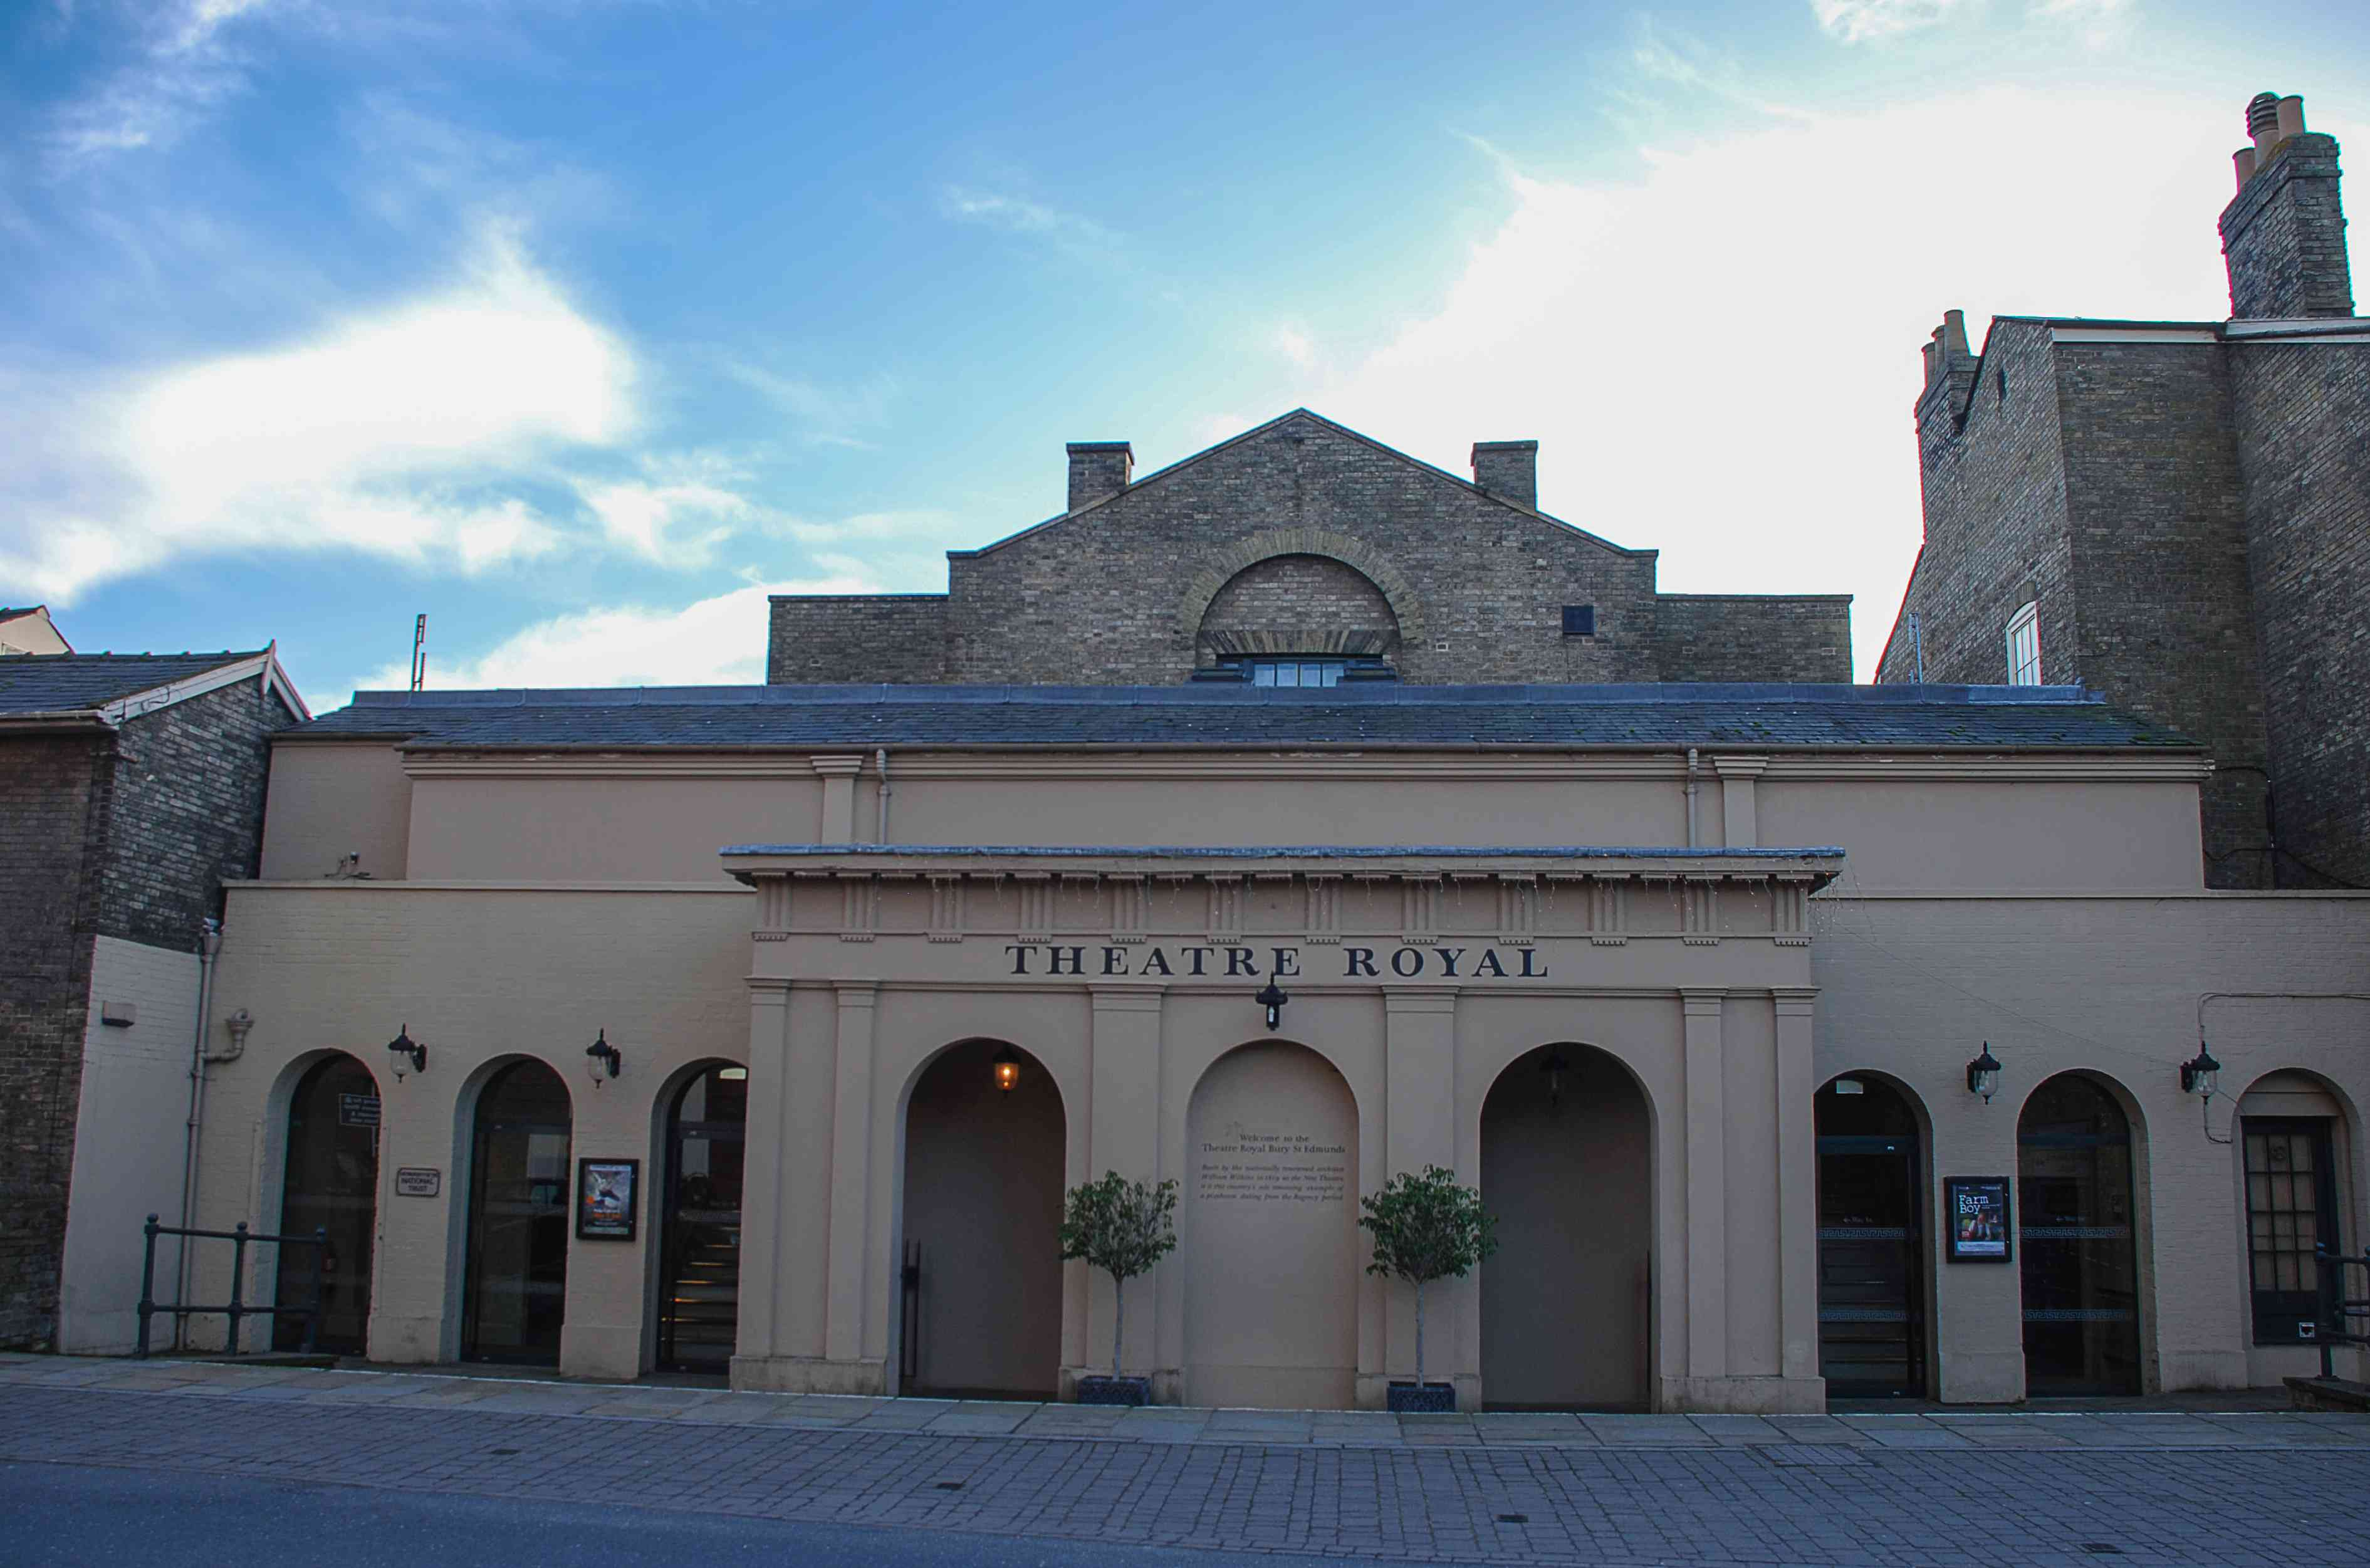 The exterior of the Theatre Royal in Bury St Edmunds, Suffolk, UK